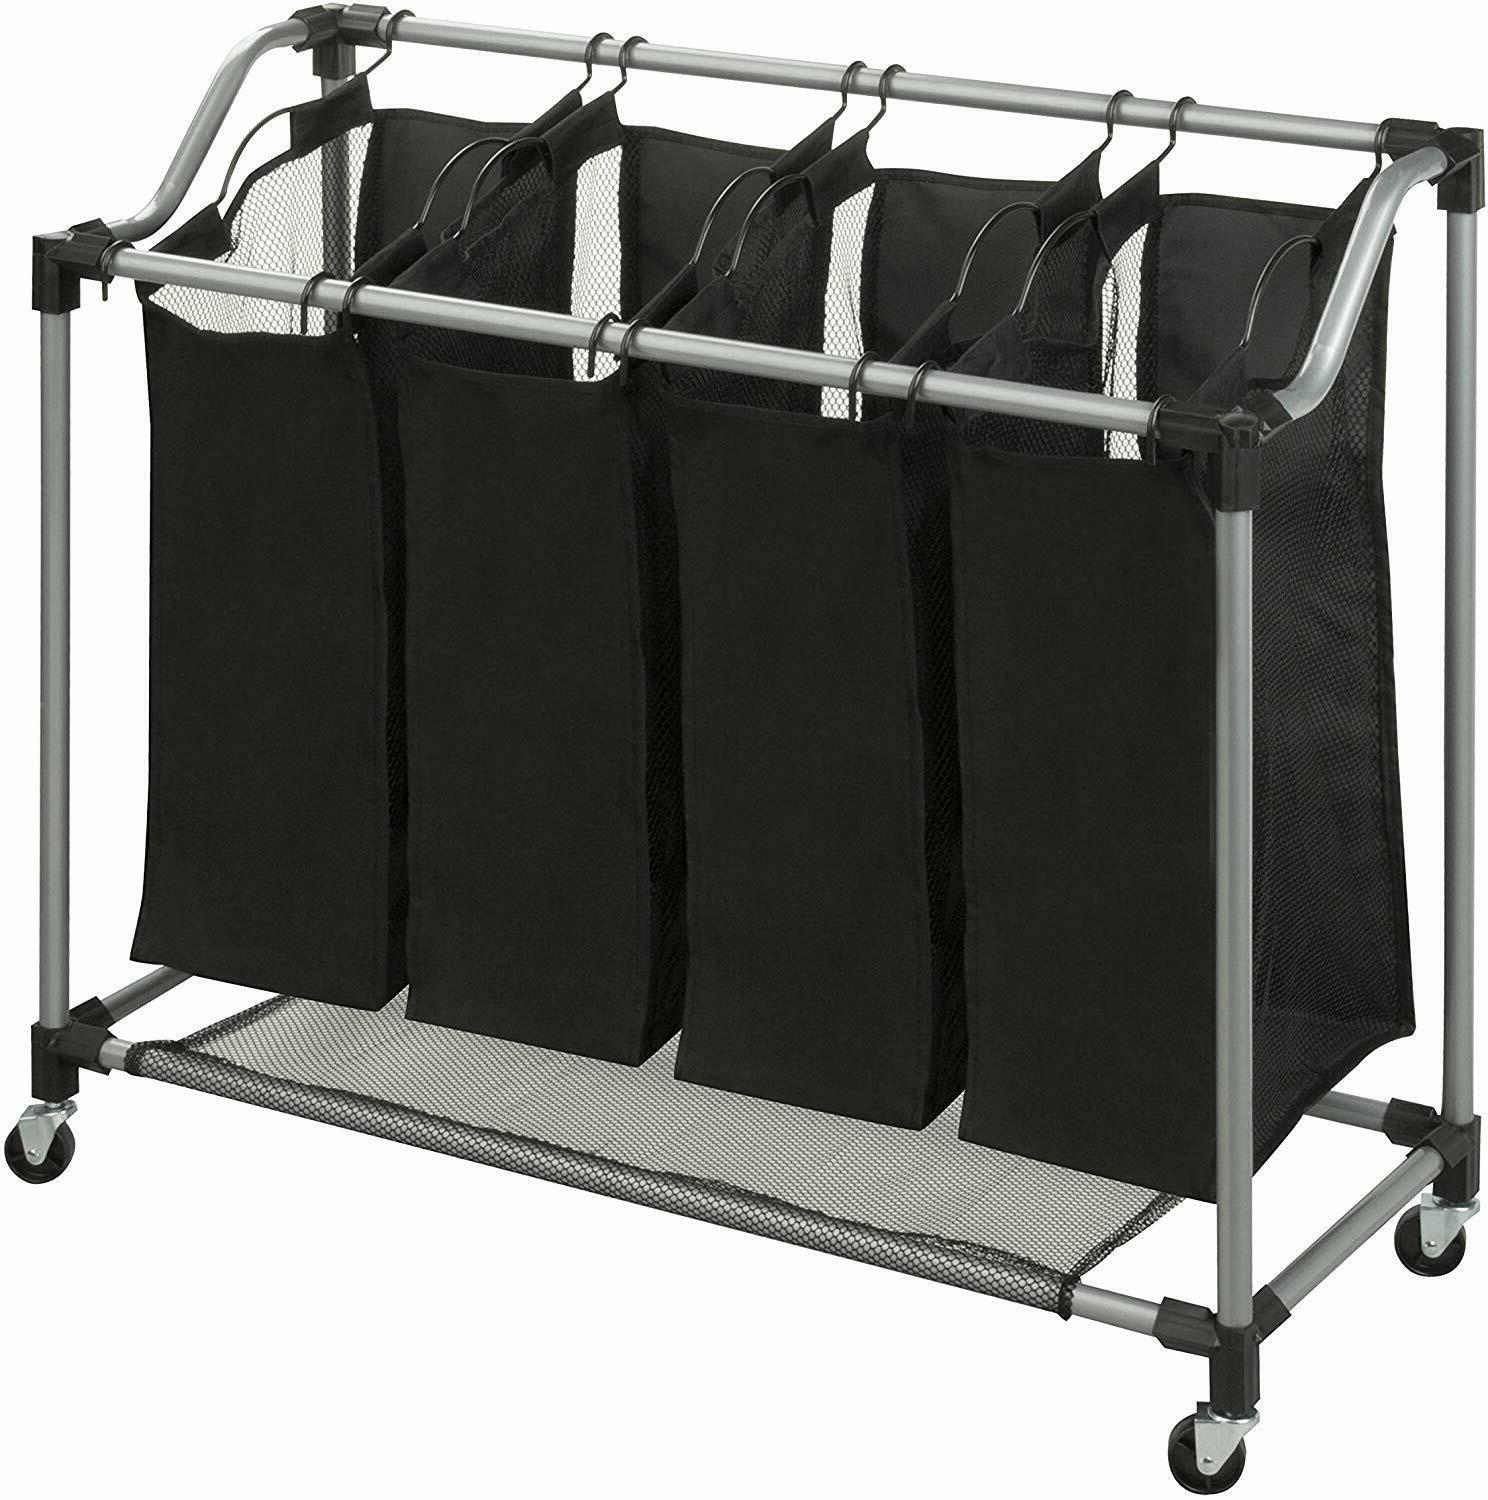 Laundry 4 Section Cart Bags Washing Clothes